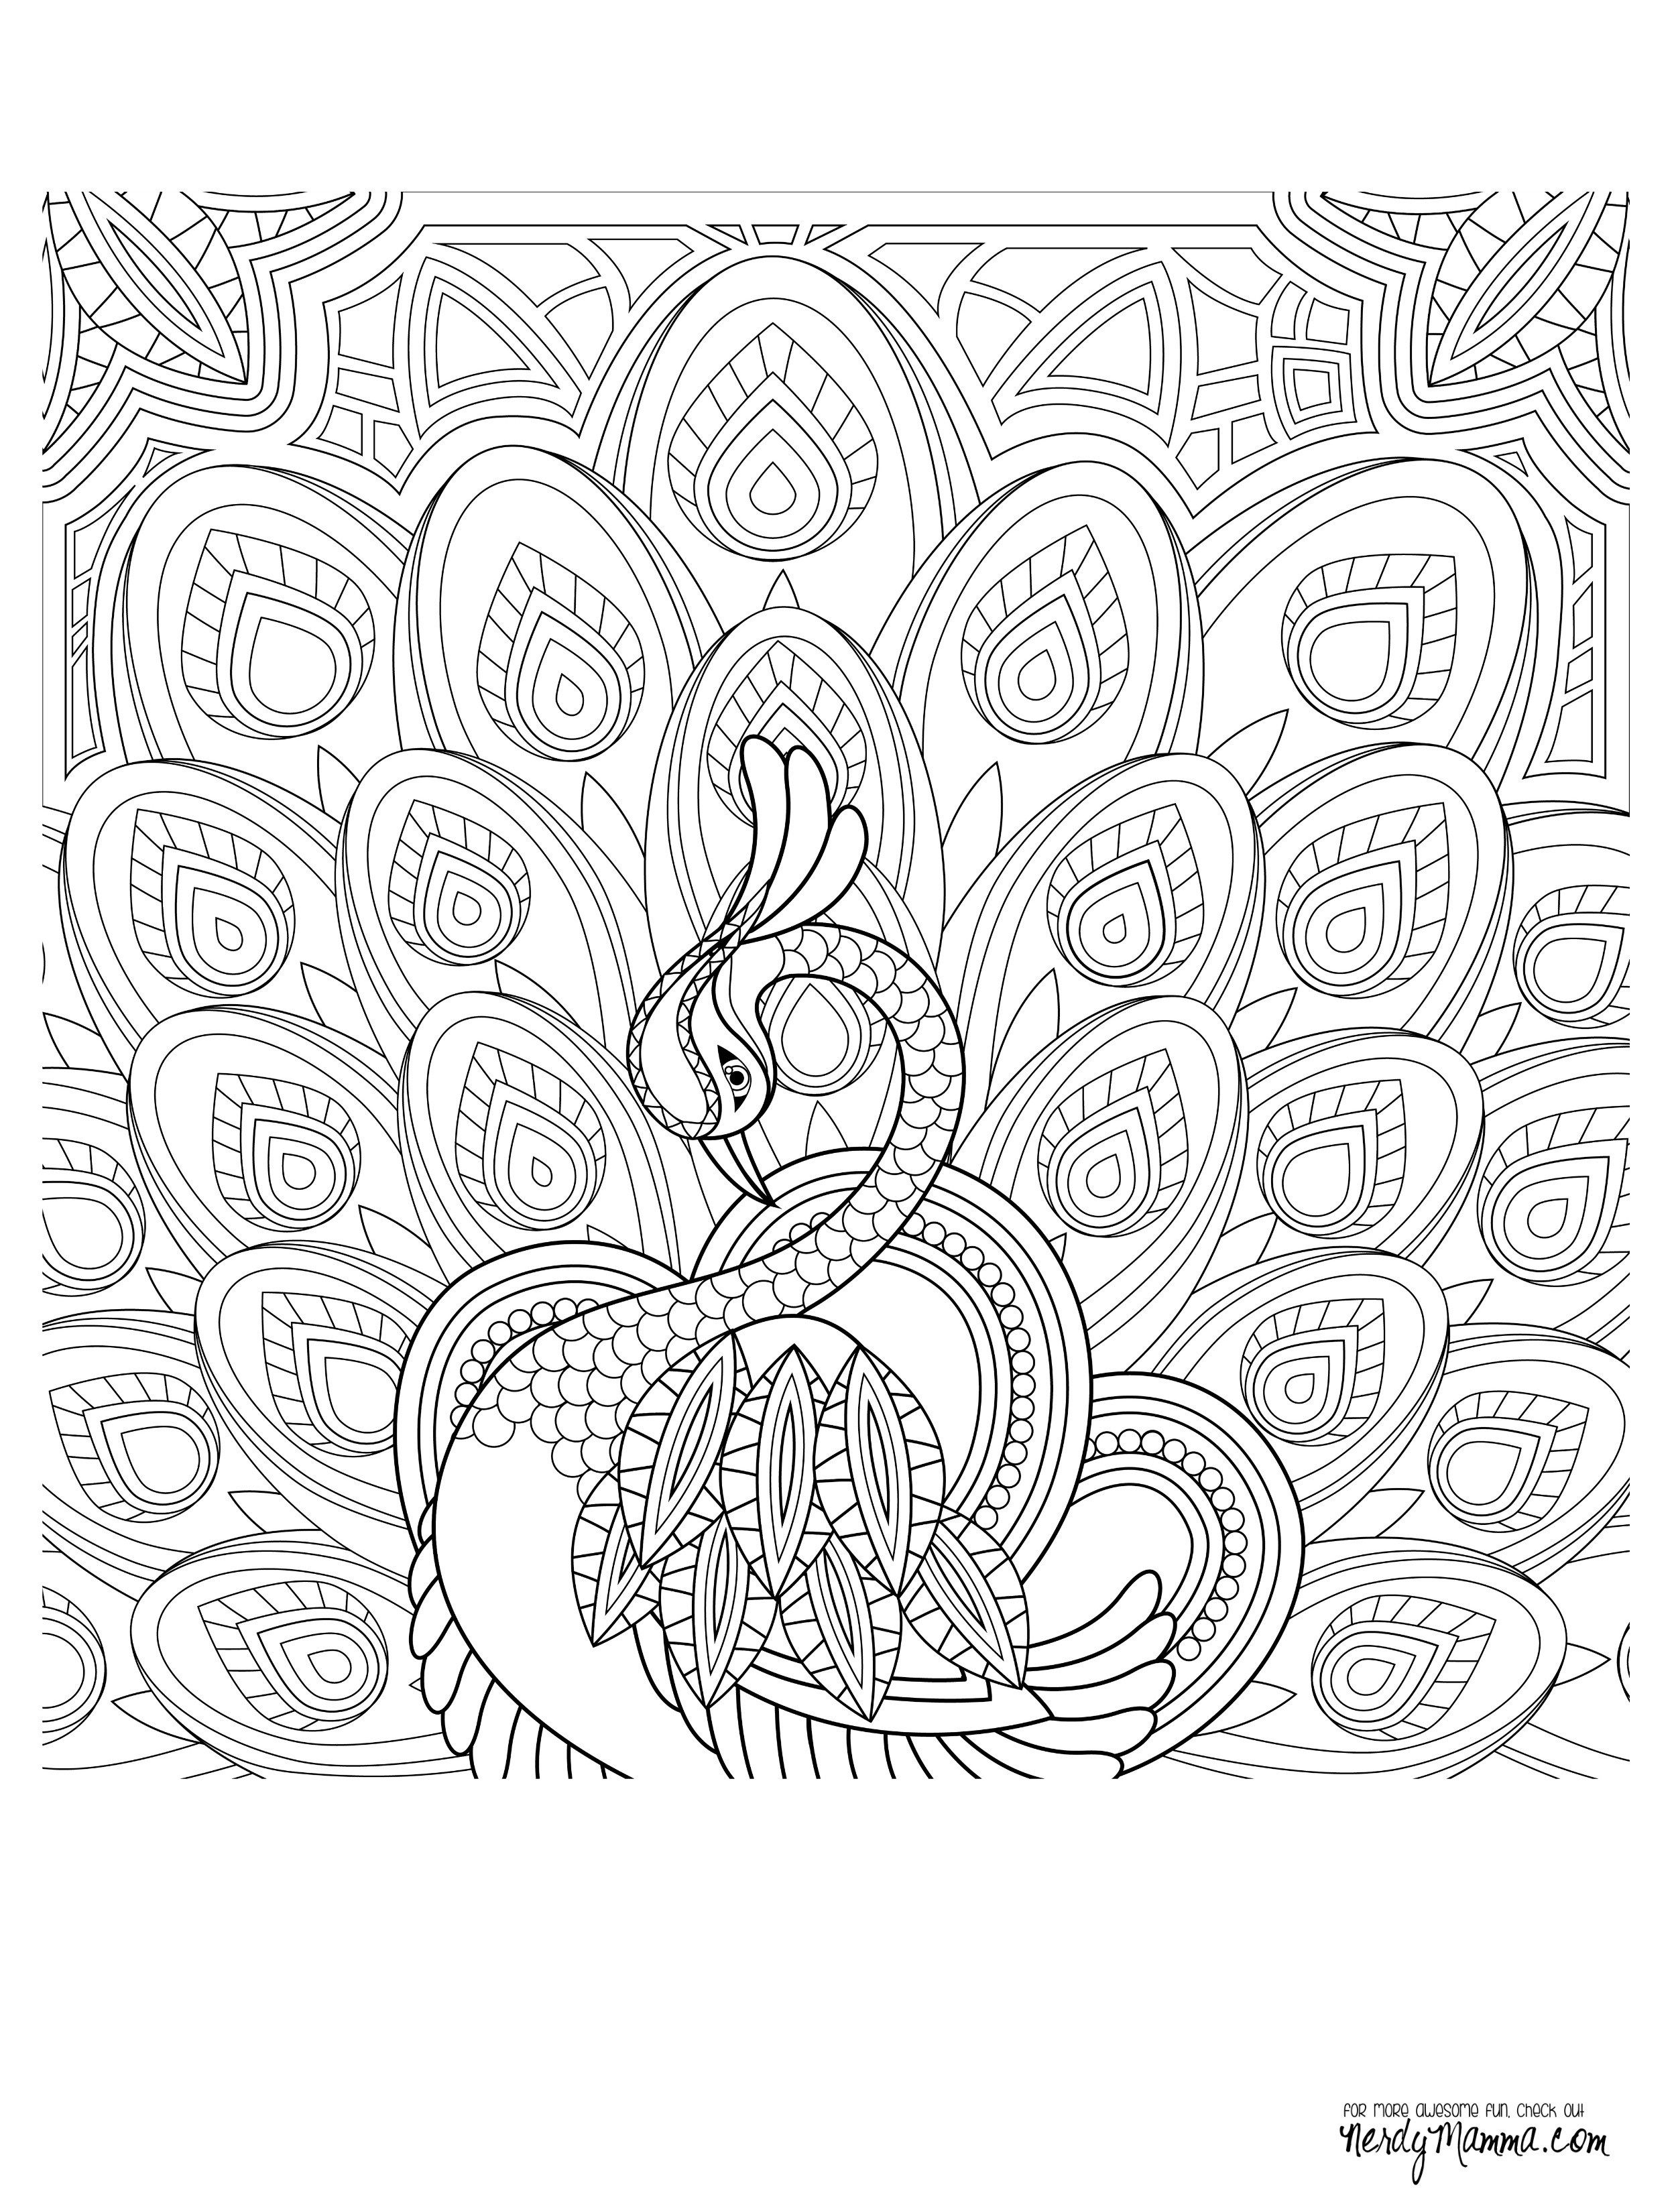 coloring pages peacock Peacock Feather Coloring pages colouring adult detailed advanced  coloring pages peacock